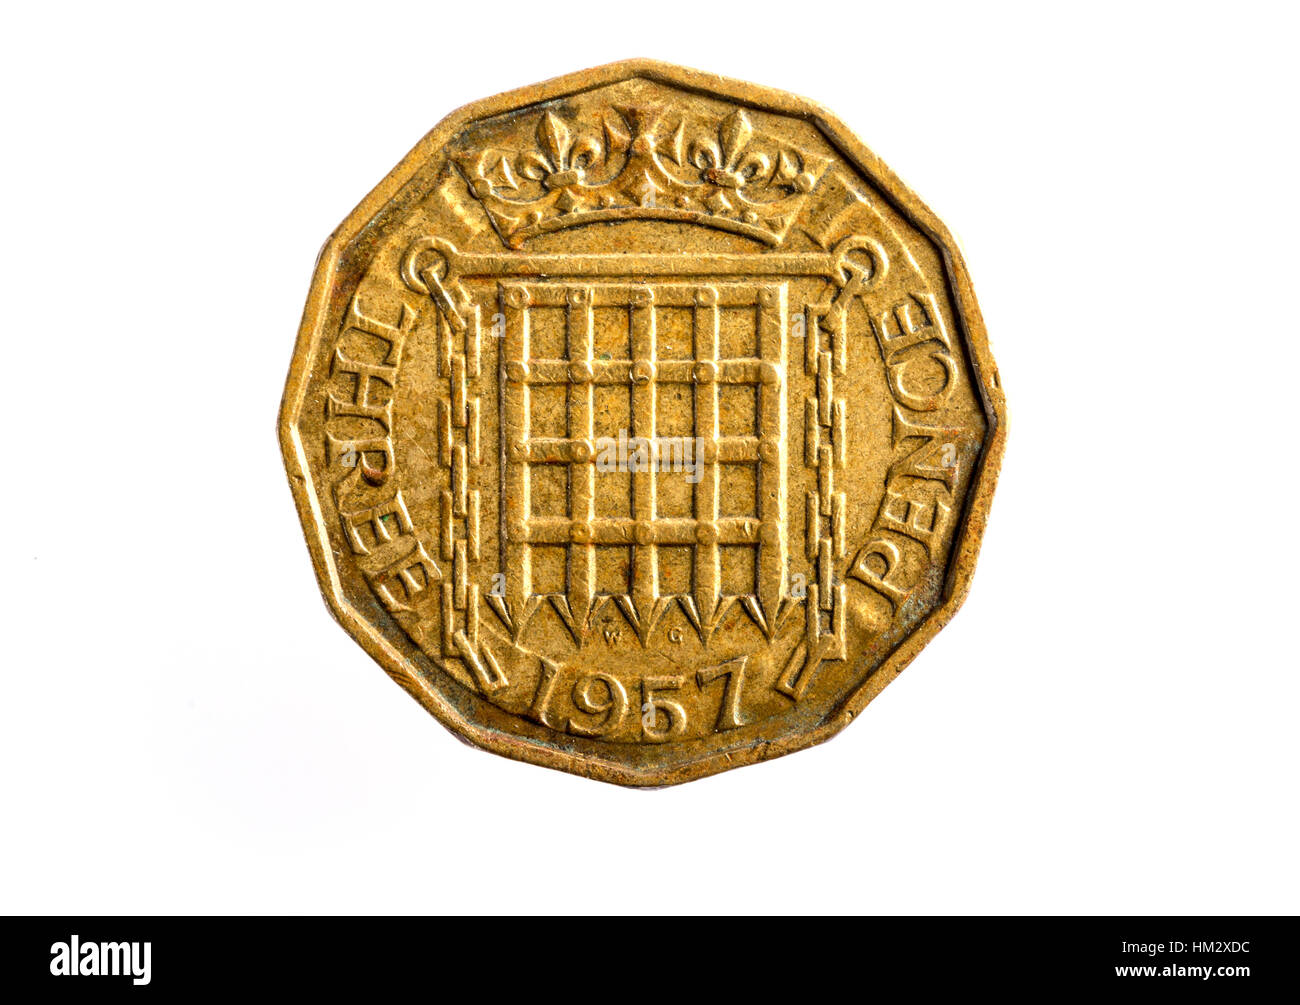 1957 three pence imperial British coin - Stock Image